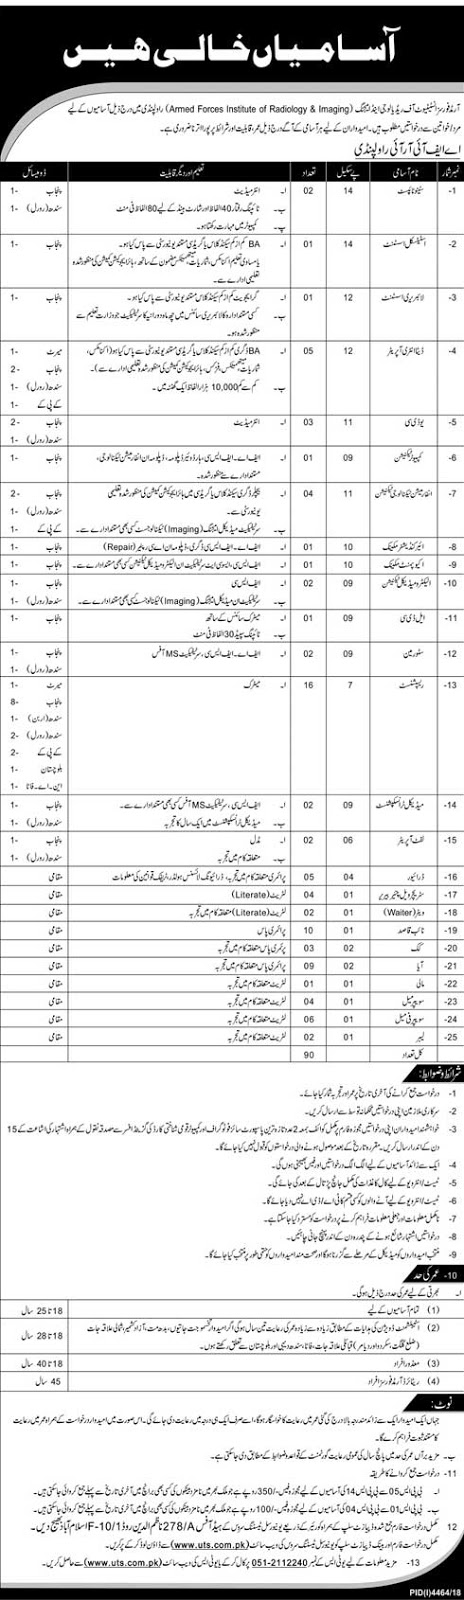 Armed Forces Institute of Radiology and Imaging jobs 2019